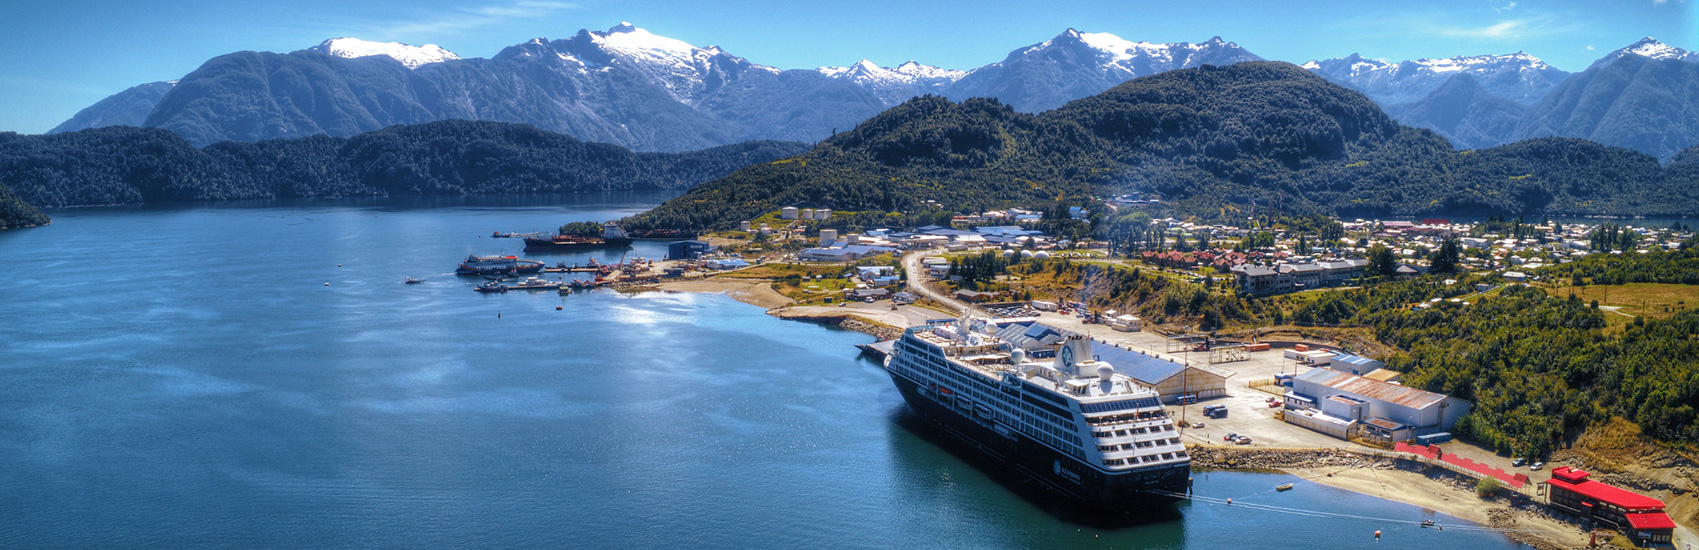 Savings offer from Azamara